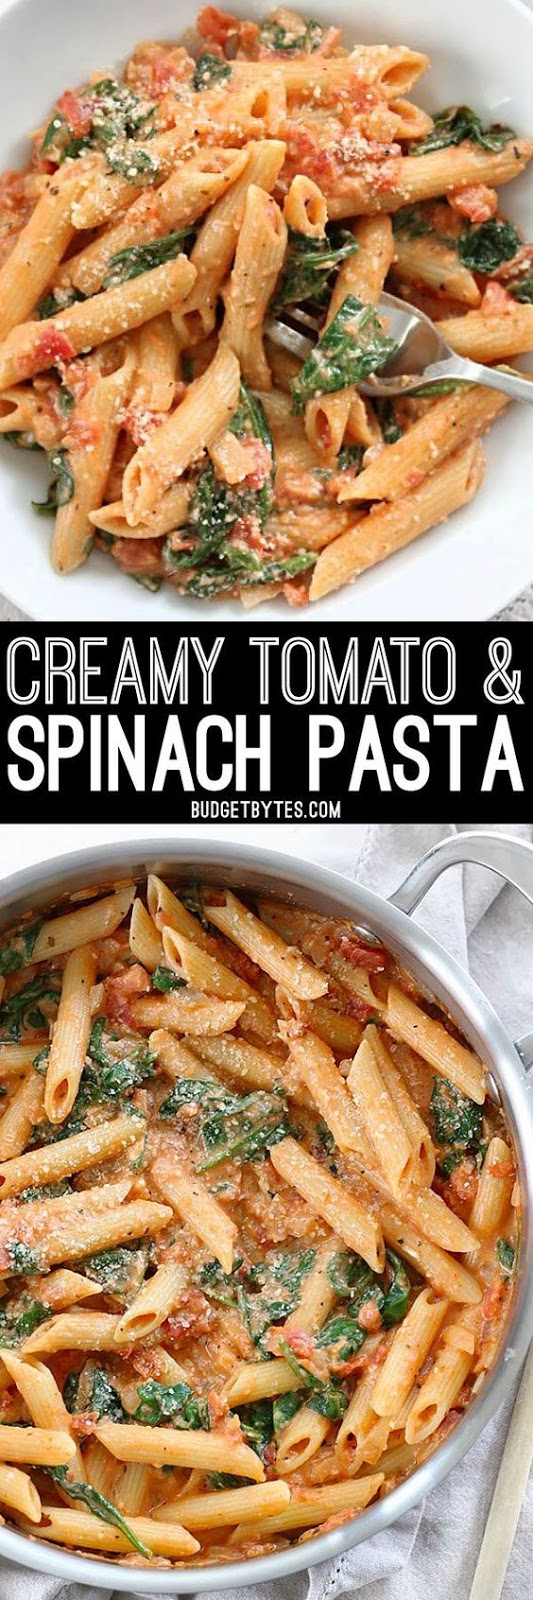 ★★★★☆ 7561 ratings | CREAMY TOMATO AND SPINACH PASTA #HEALTHYFOOD #EASYRECIPES #DINNER #LAUCH #DELICIOUS #EASY #HOLIDAYS #RECIPE #CREAMY #TOMATO #SPINACH #PASTA